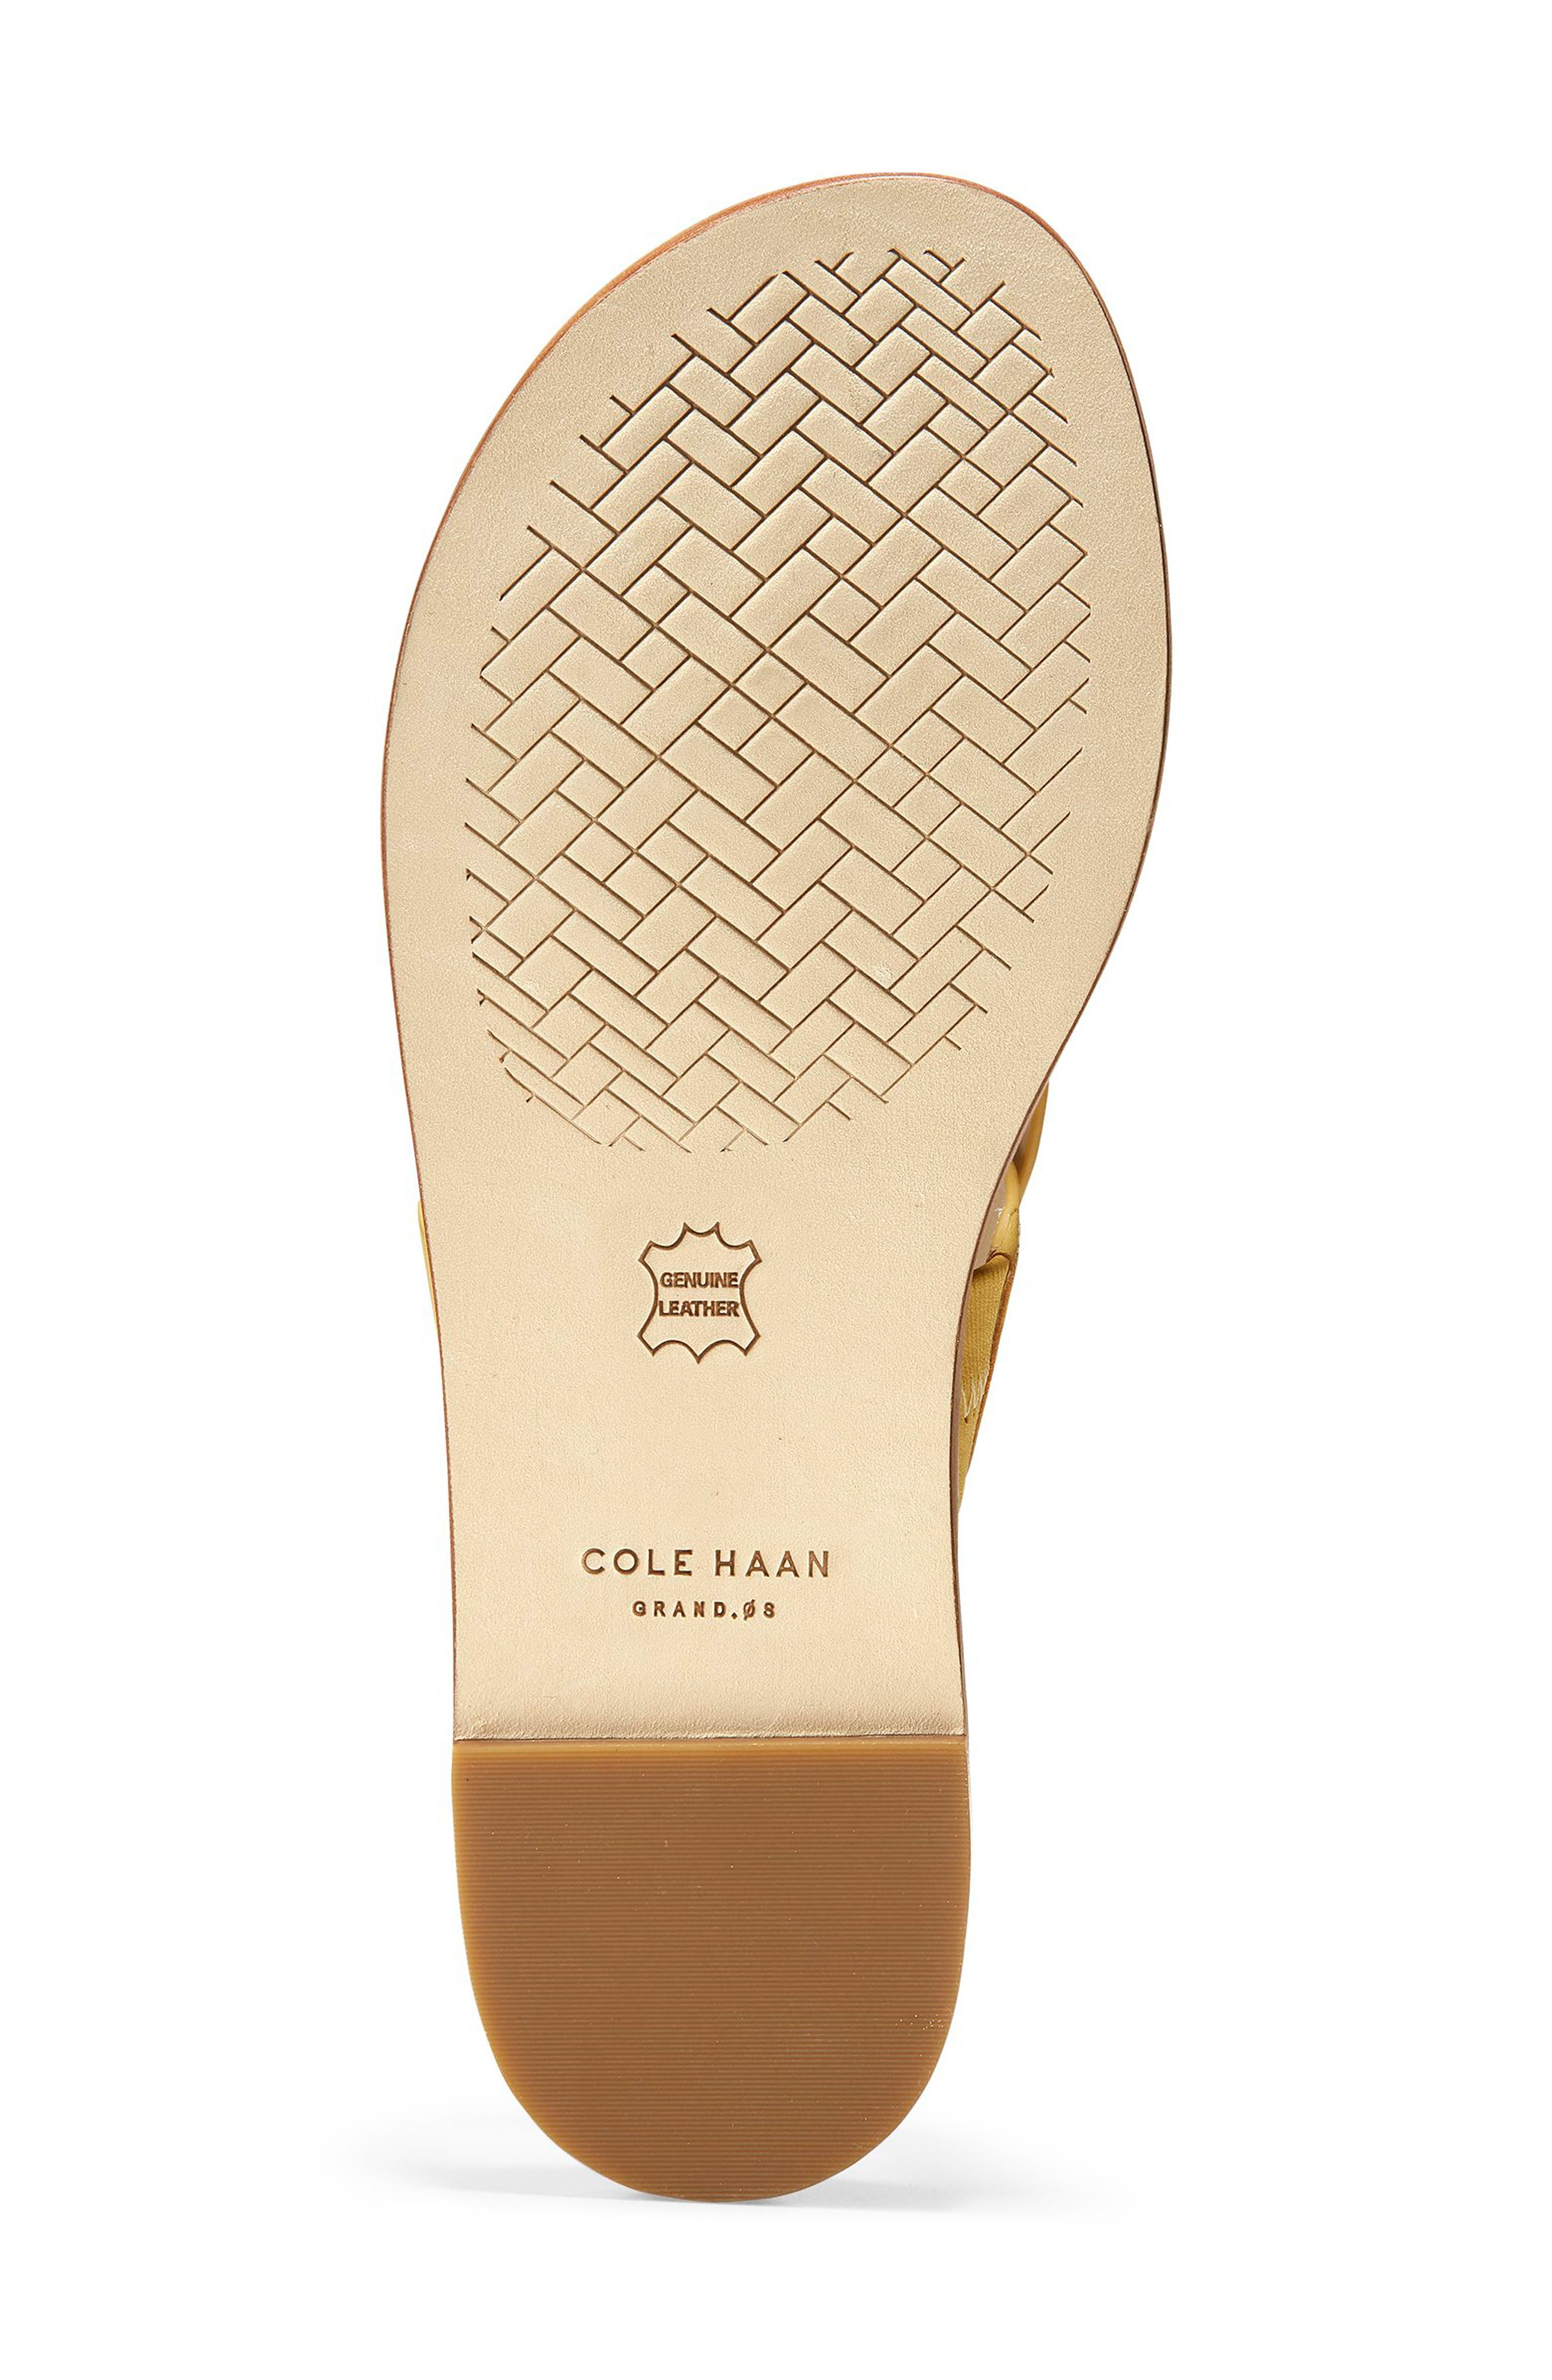 COLE HAAN, Anica Sandal, Alternate thumbnail 6, color, SUNSET GOLD LEATHER